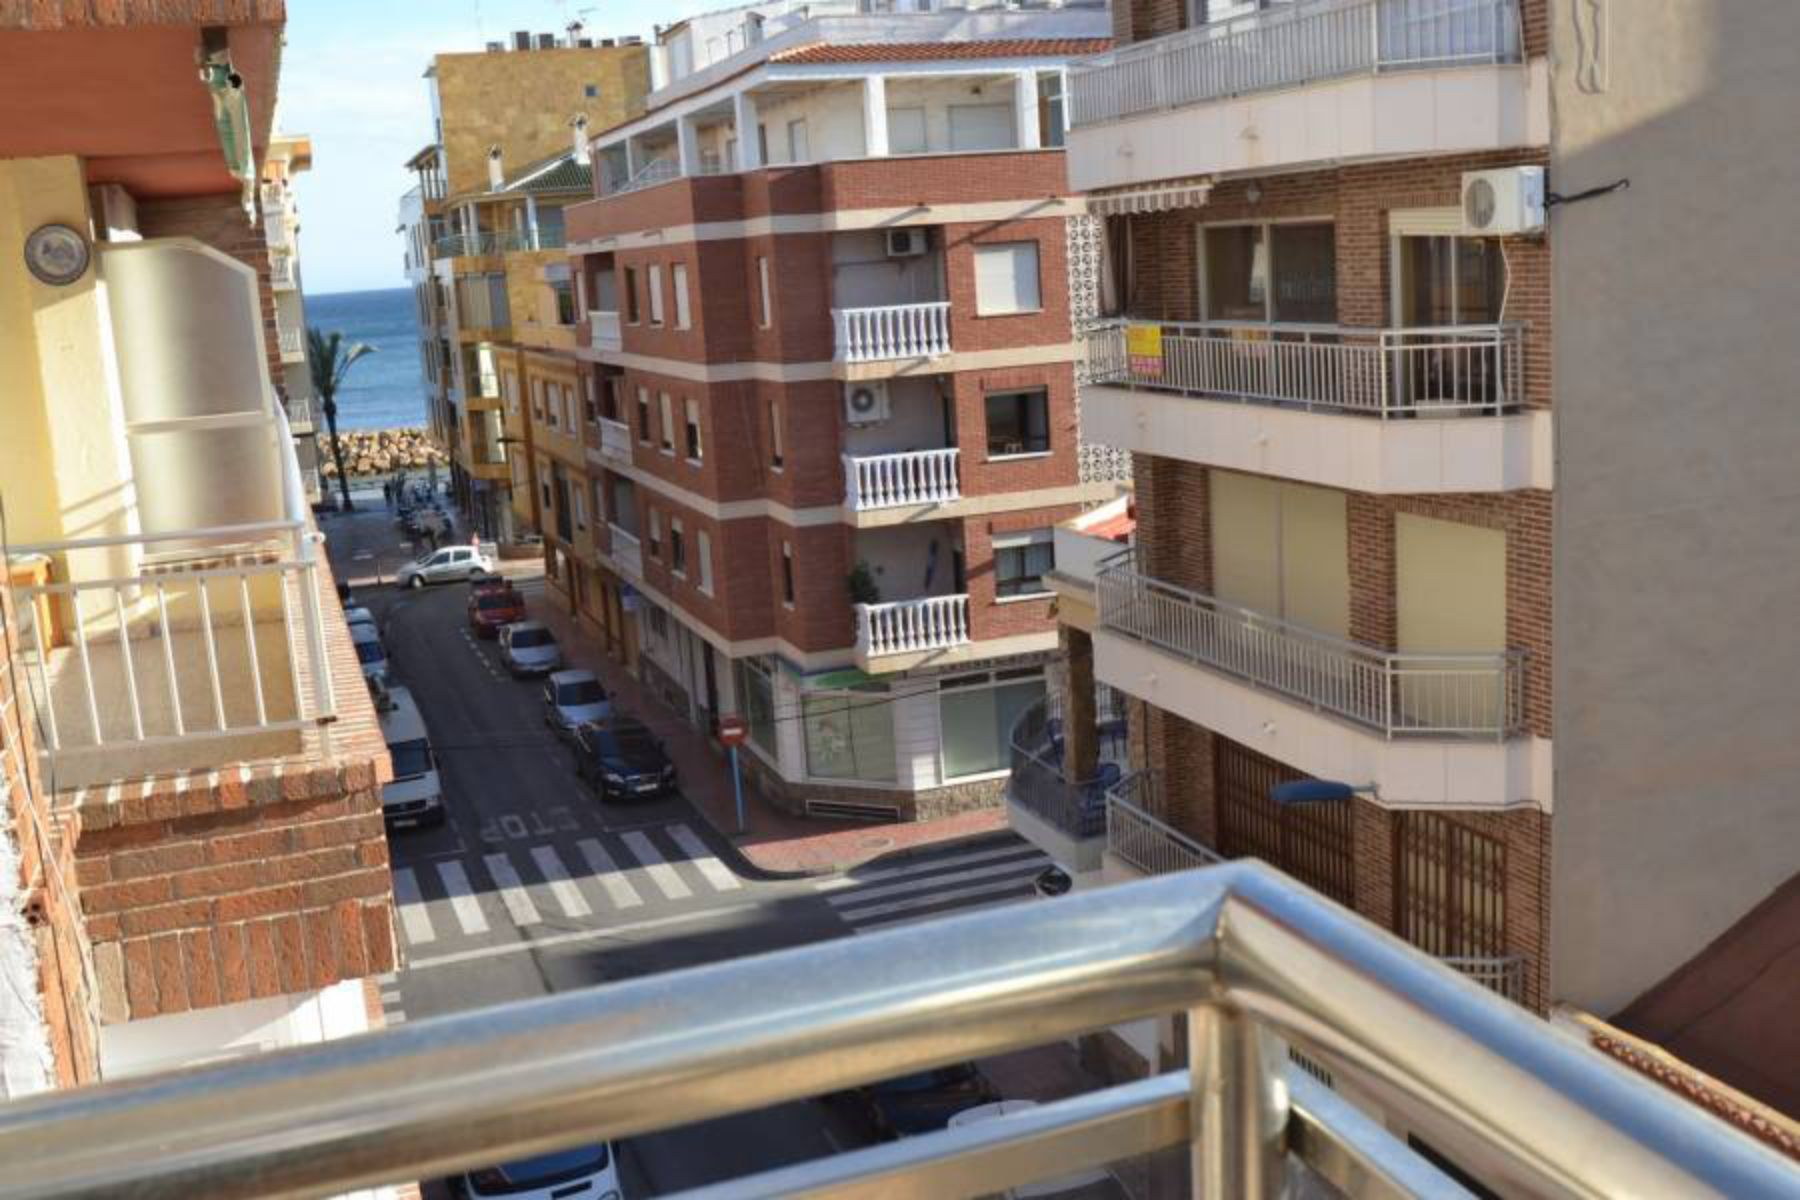 3 Bedrooms Apartment For Sale with Lateral Sea Views El Cura Beach – Torrevieja